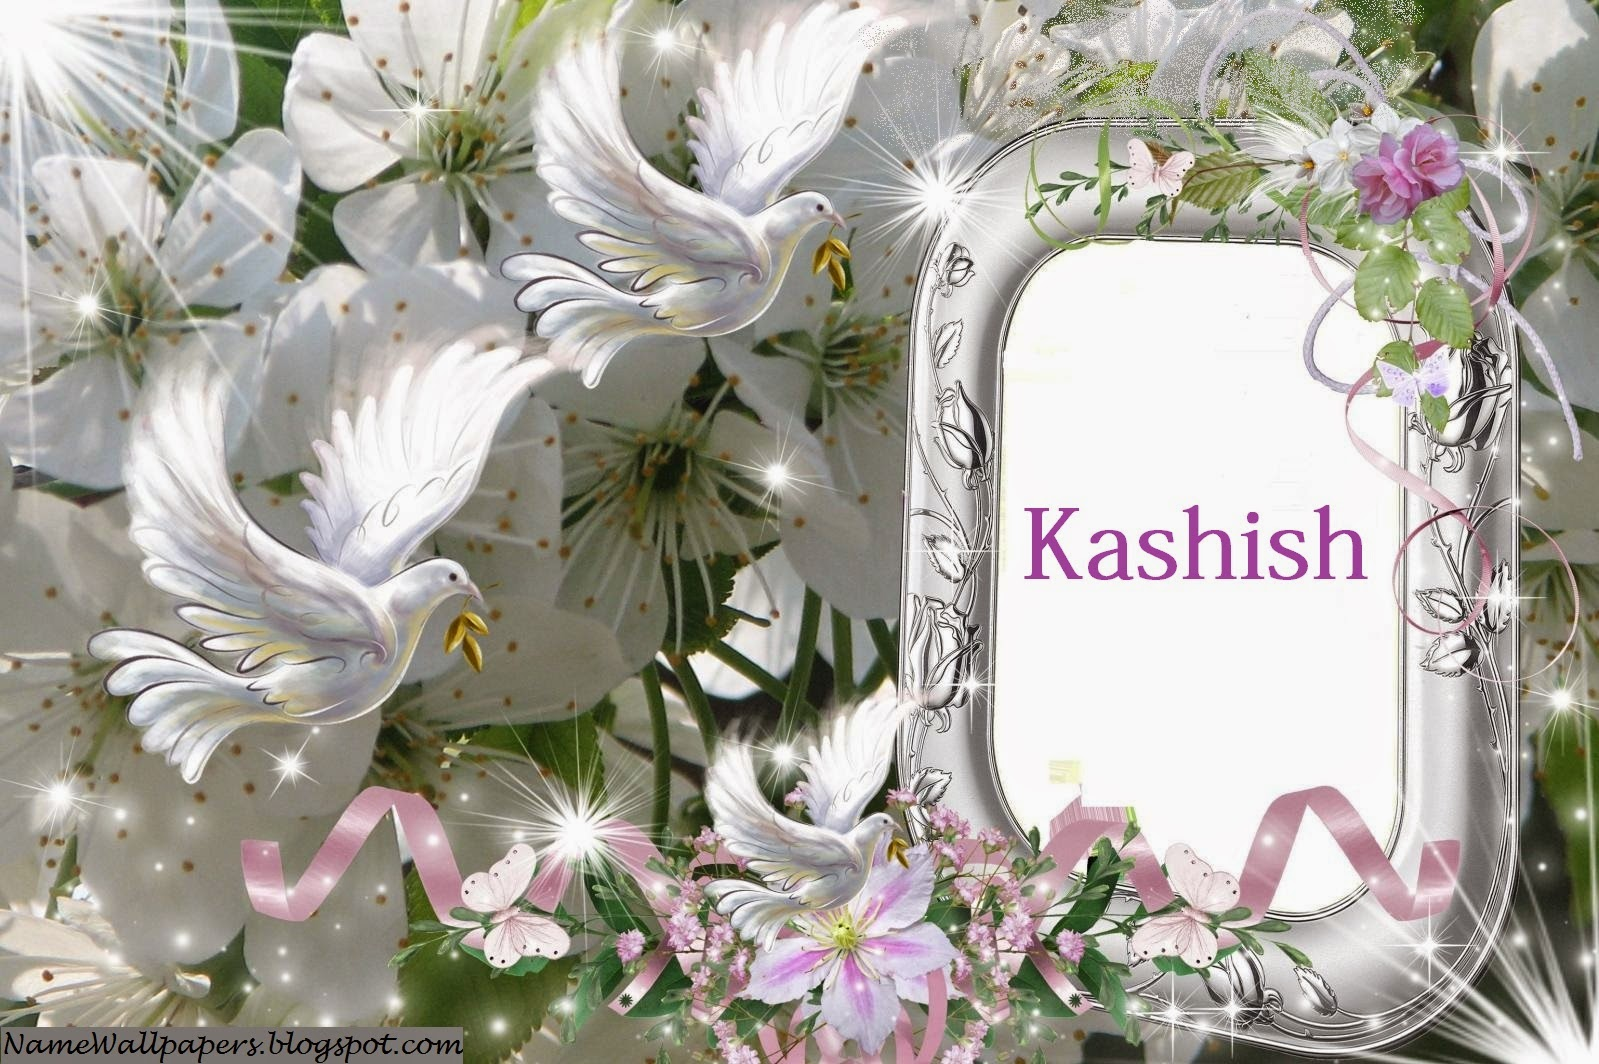 Kashish Name Wallpaper